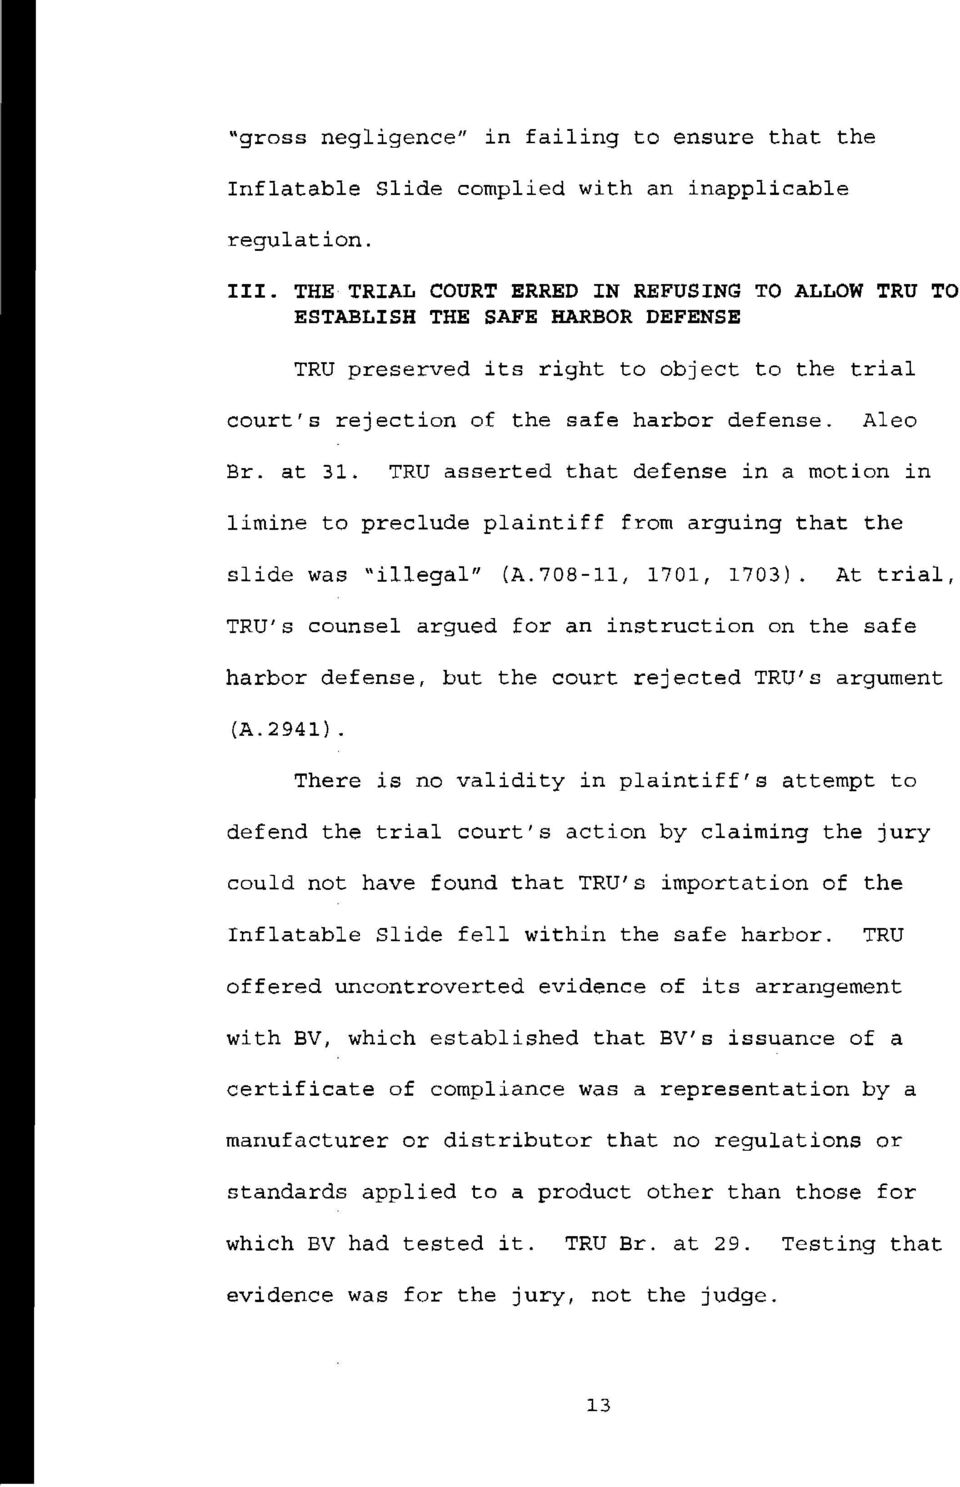 "TRU asserted that defense in a motion in limine to preclude plaintiff from arguing that the slide was ""illegal"" (A.70S-II, 1701, 1703)."